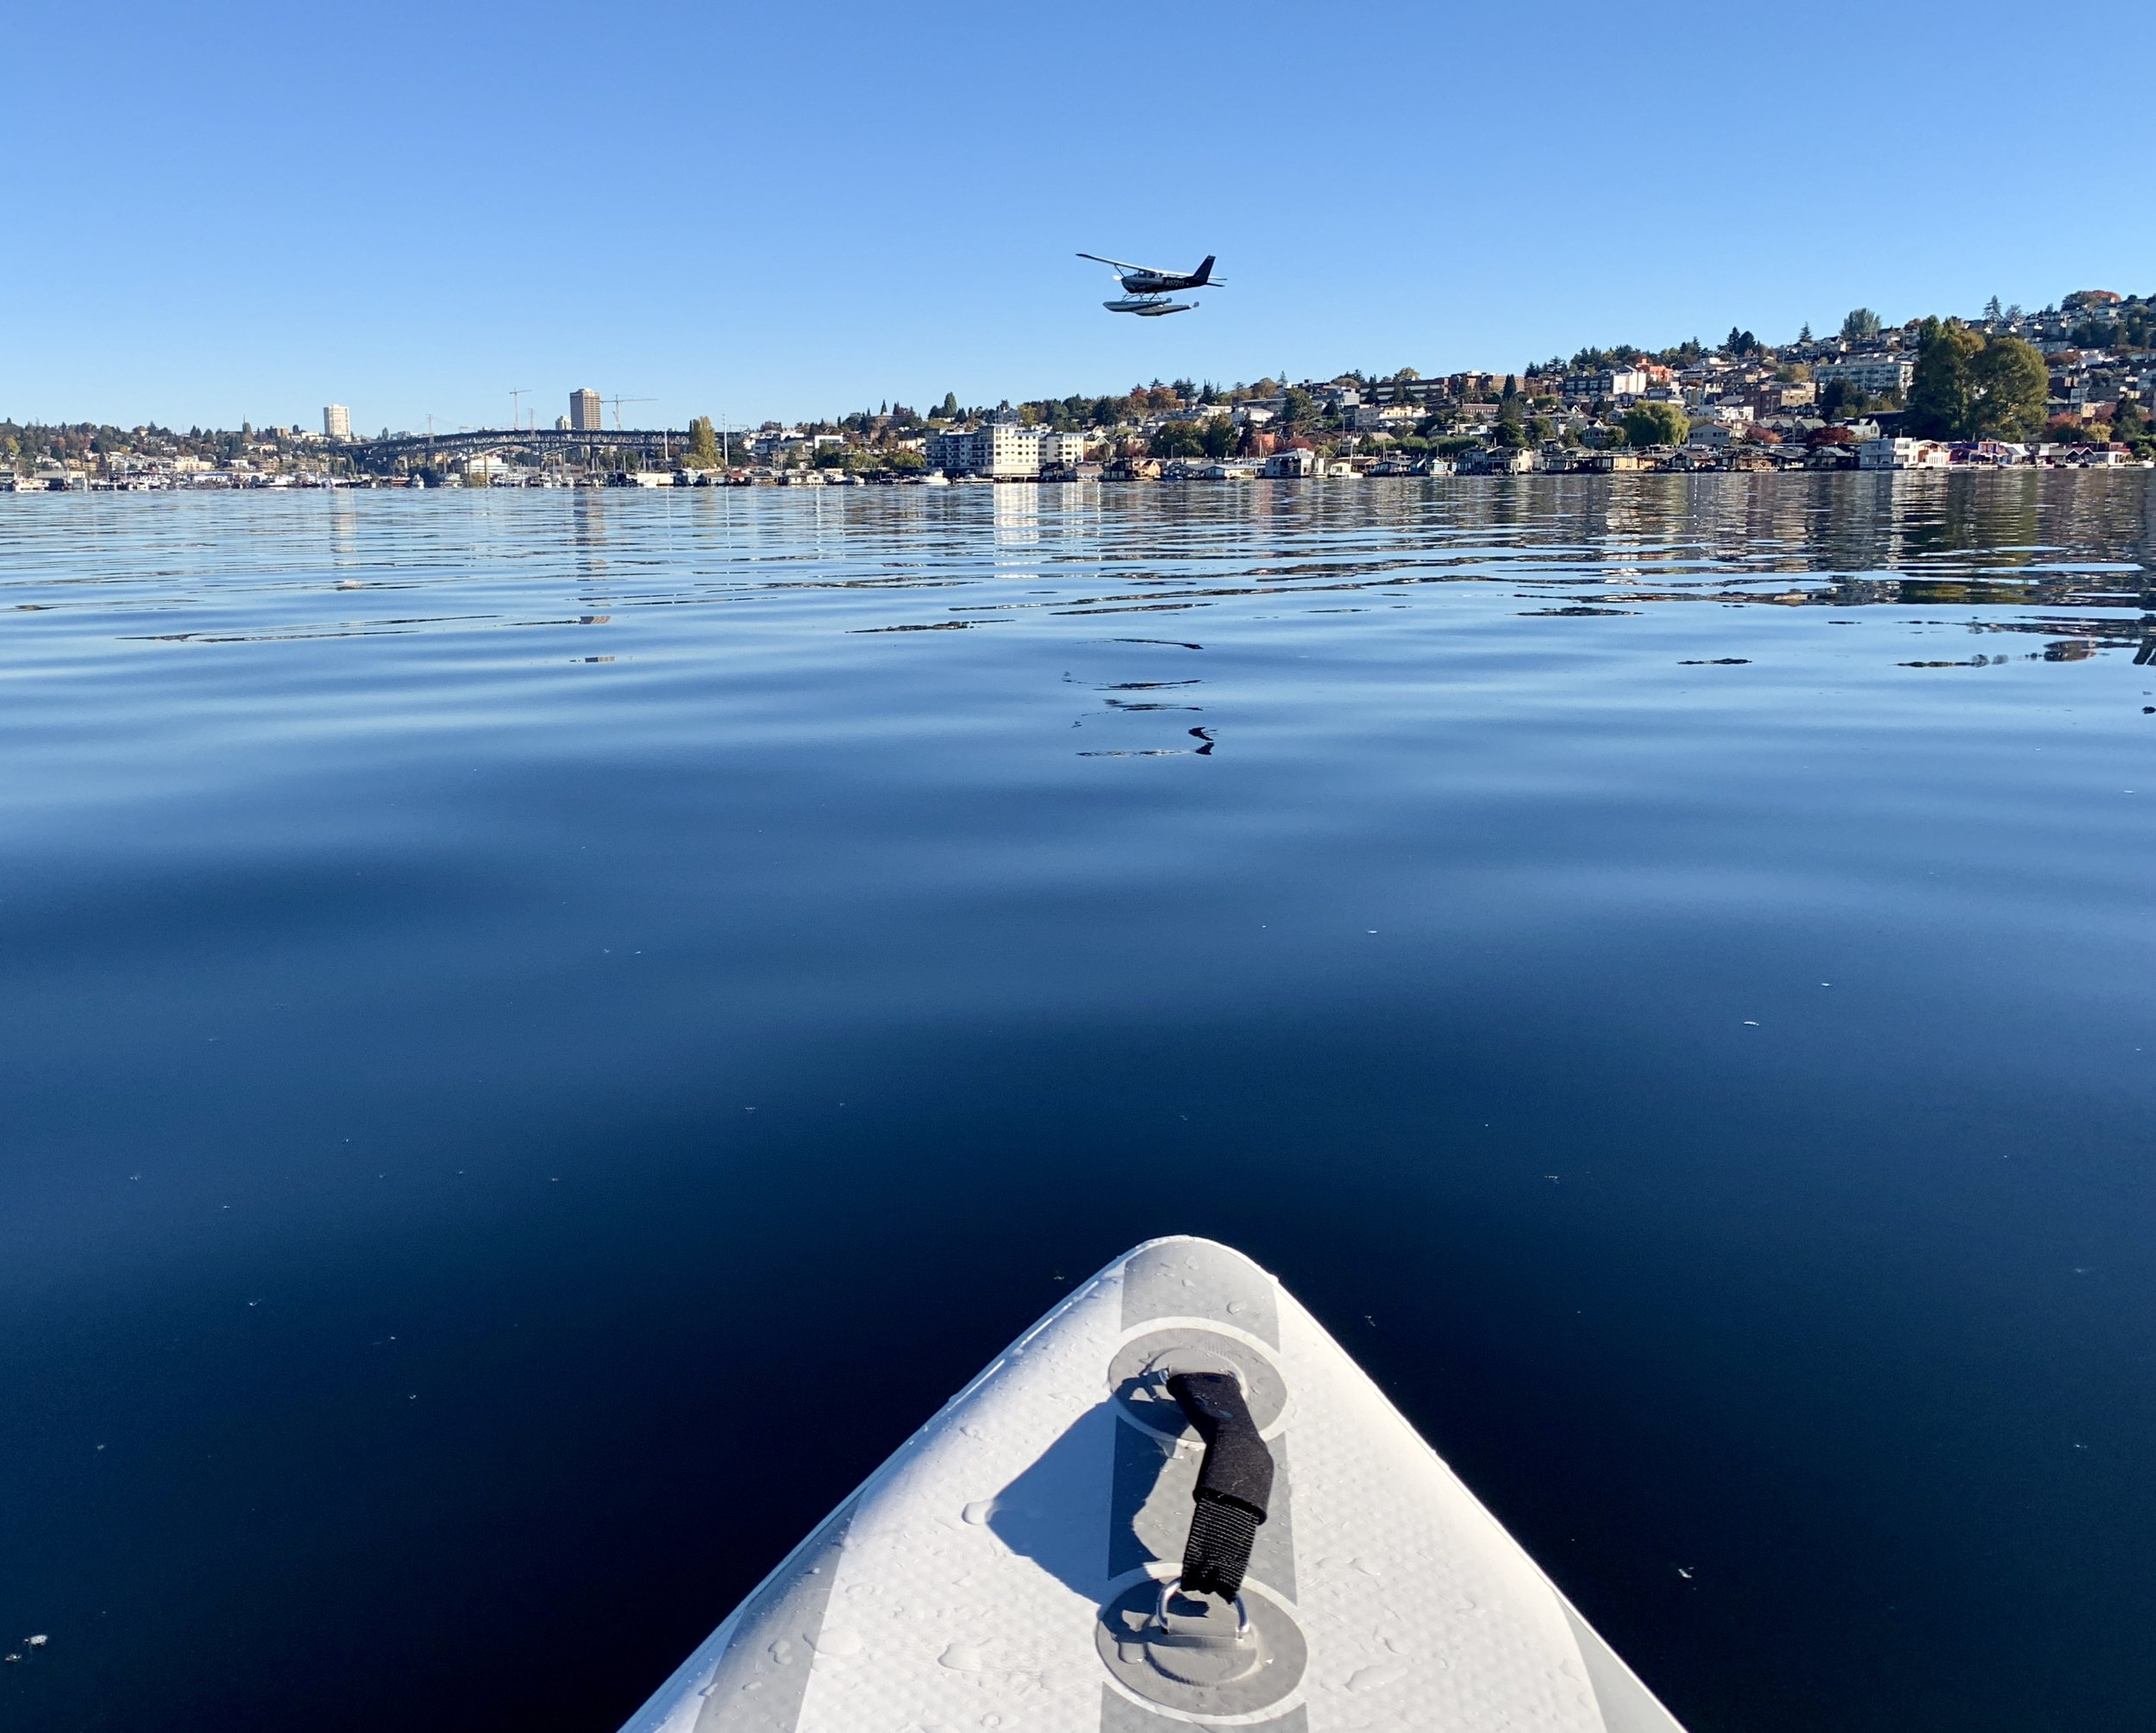 Watching the seaplanes on Lake Union